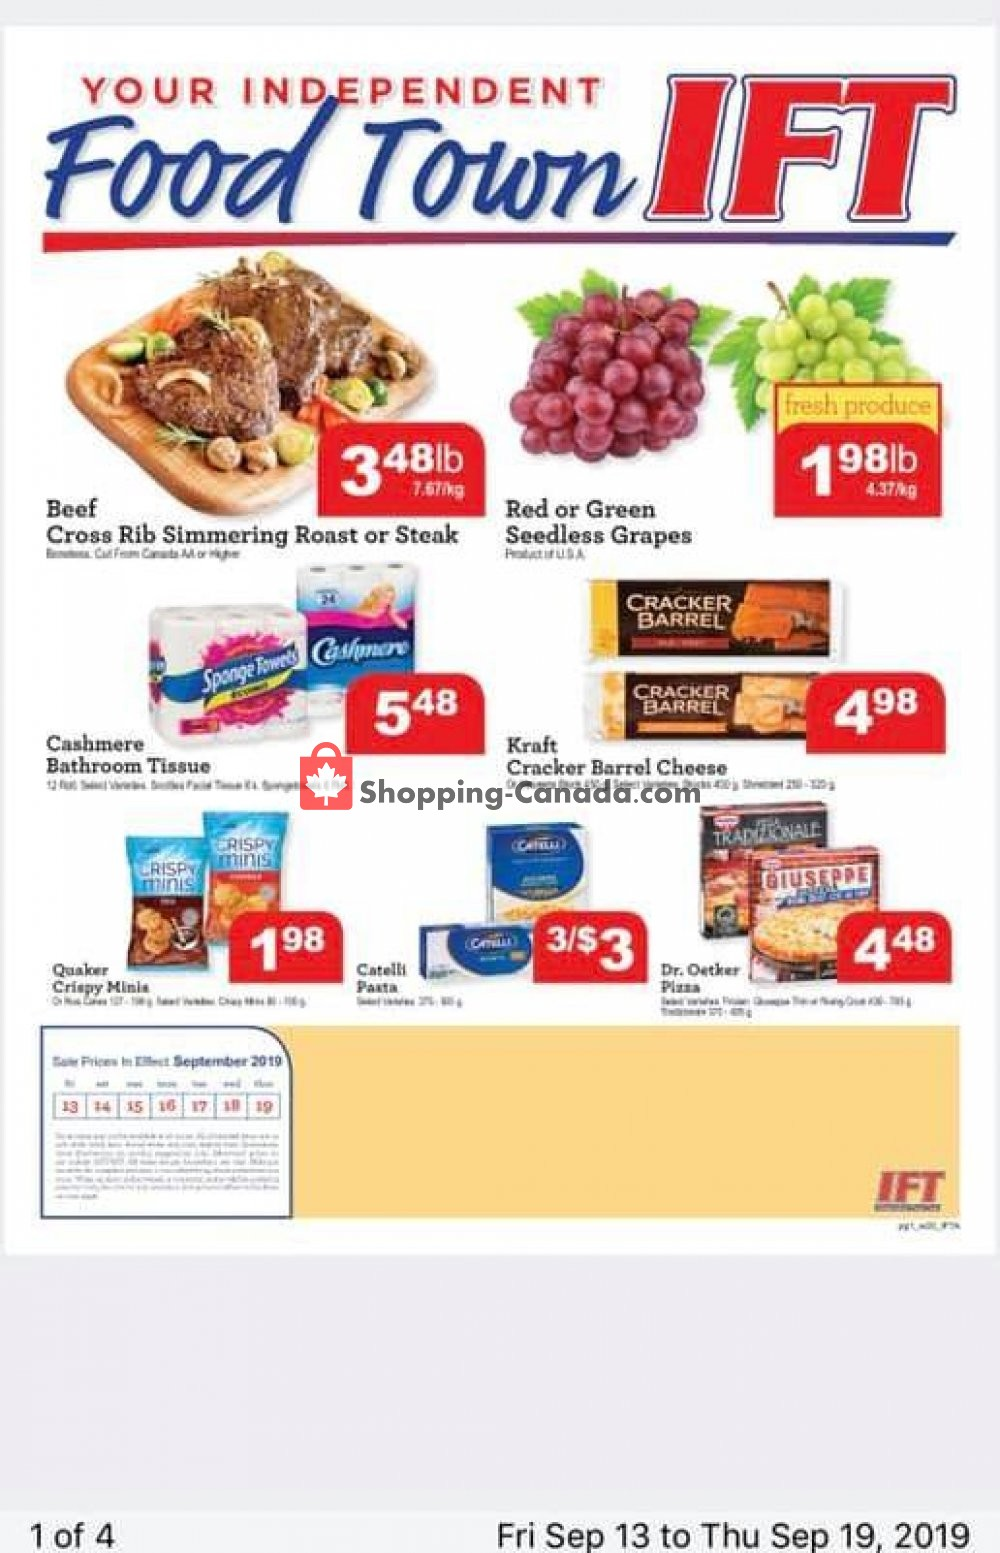 Flyer IFT Independent Food Town Canada - from Friday September 13, 2019 to Thursday September 19, 2019